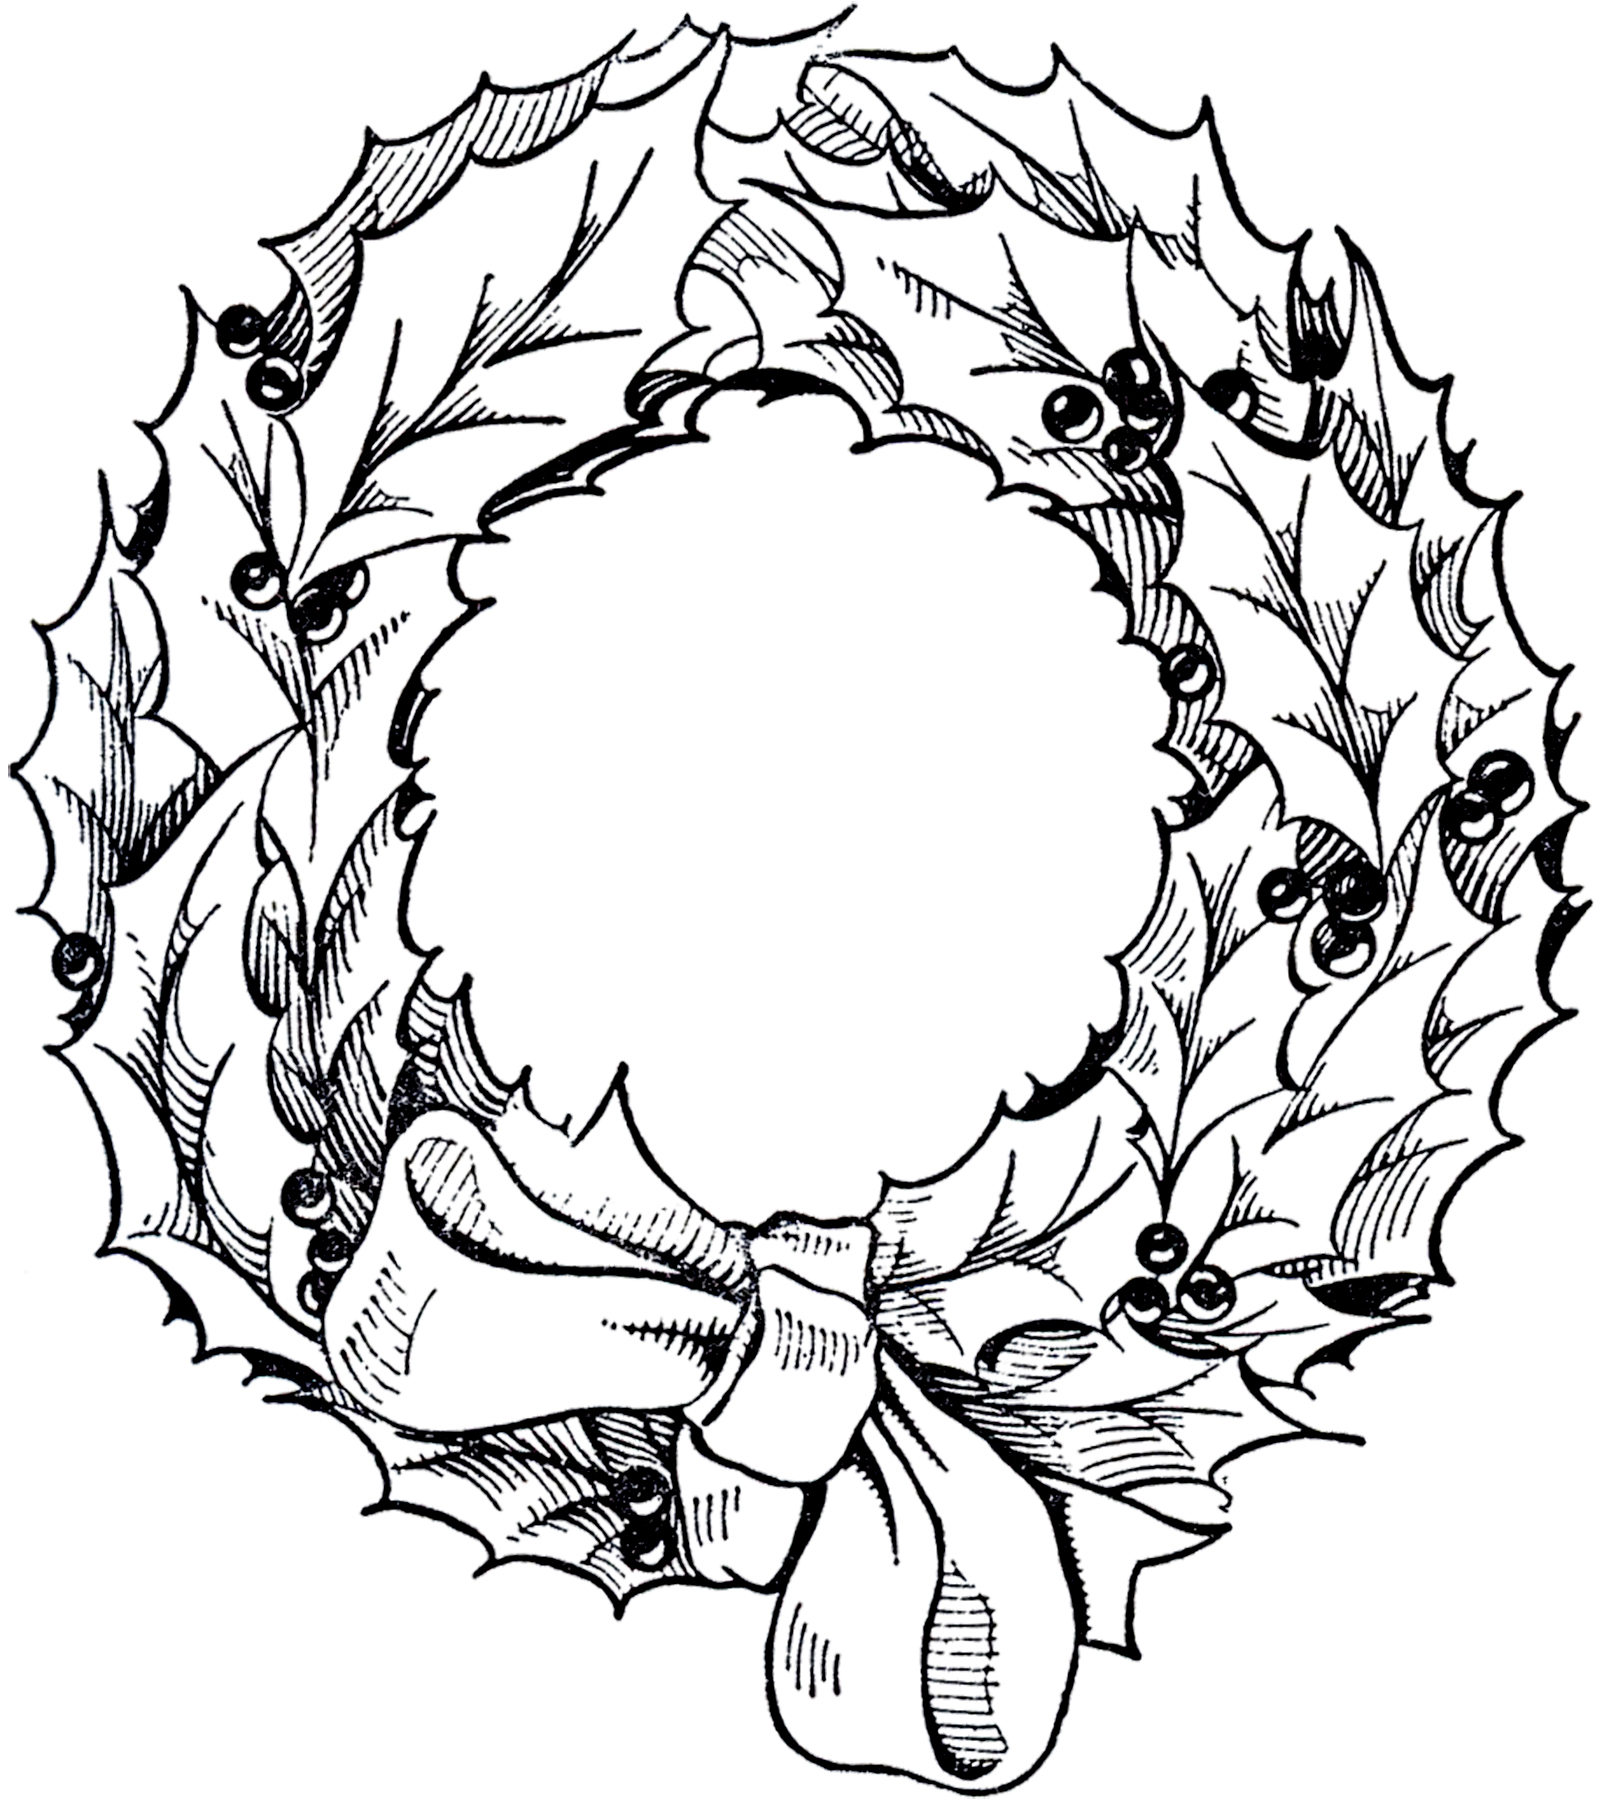 vintage christmas wreath graphic the graphics fairy